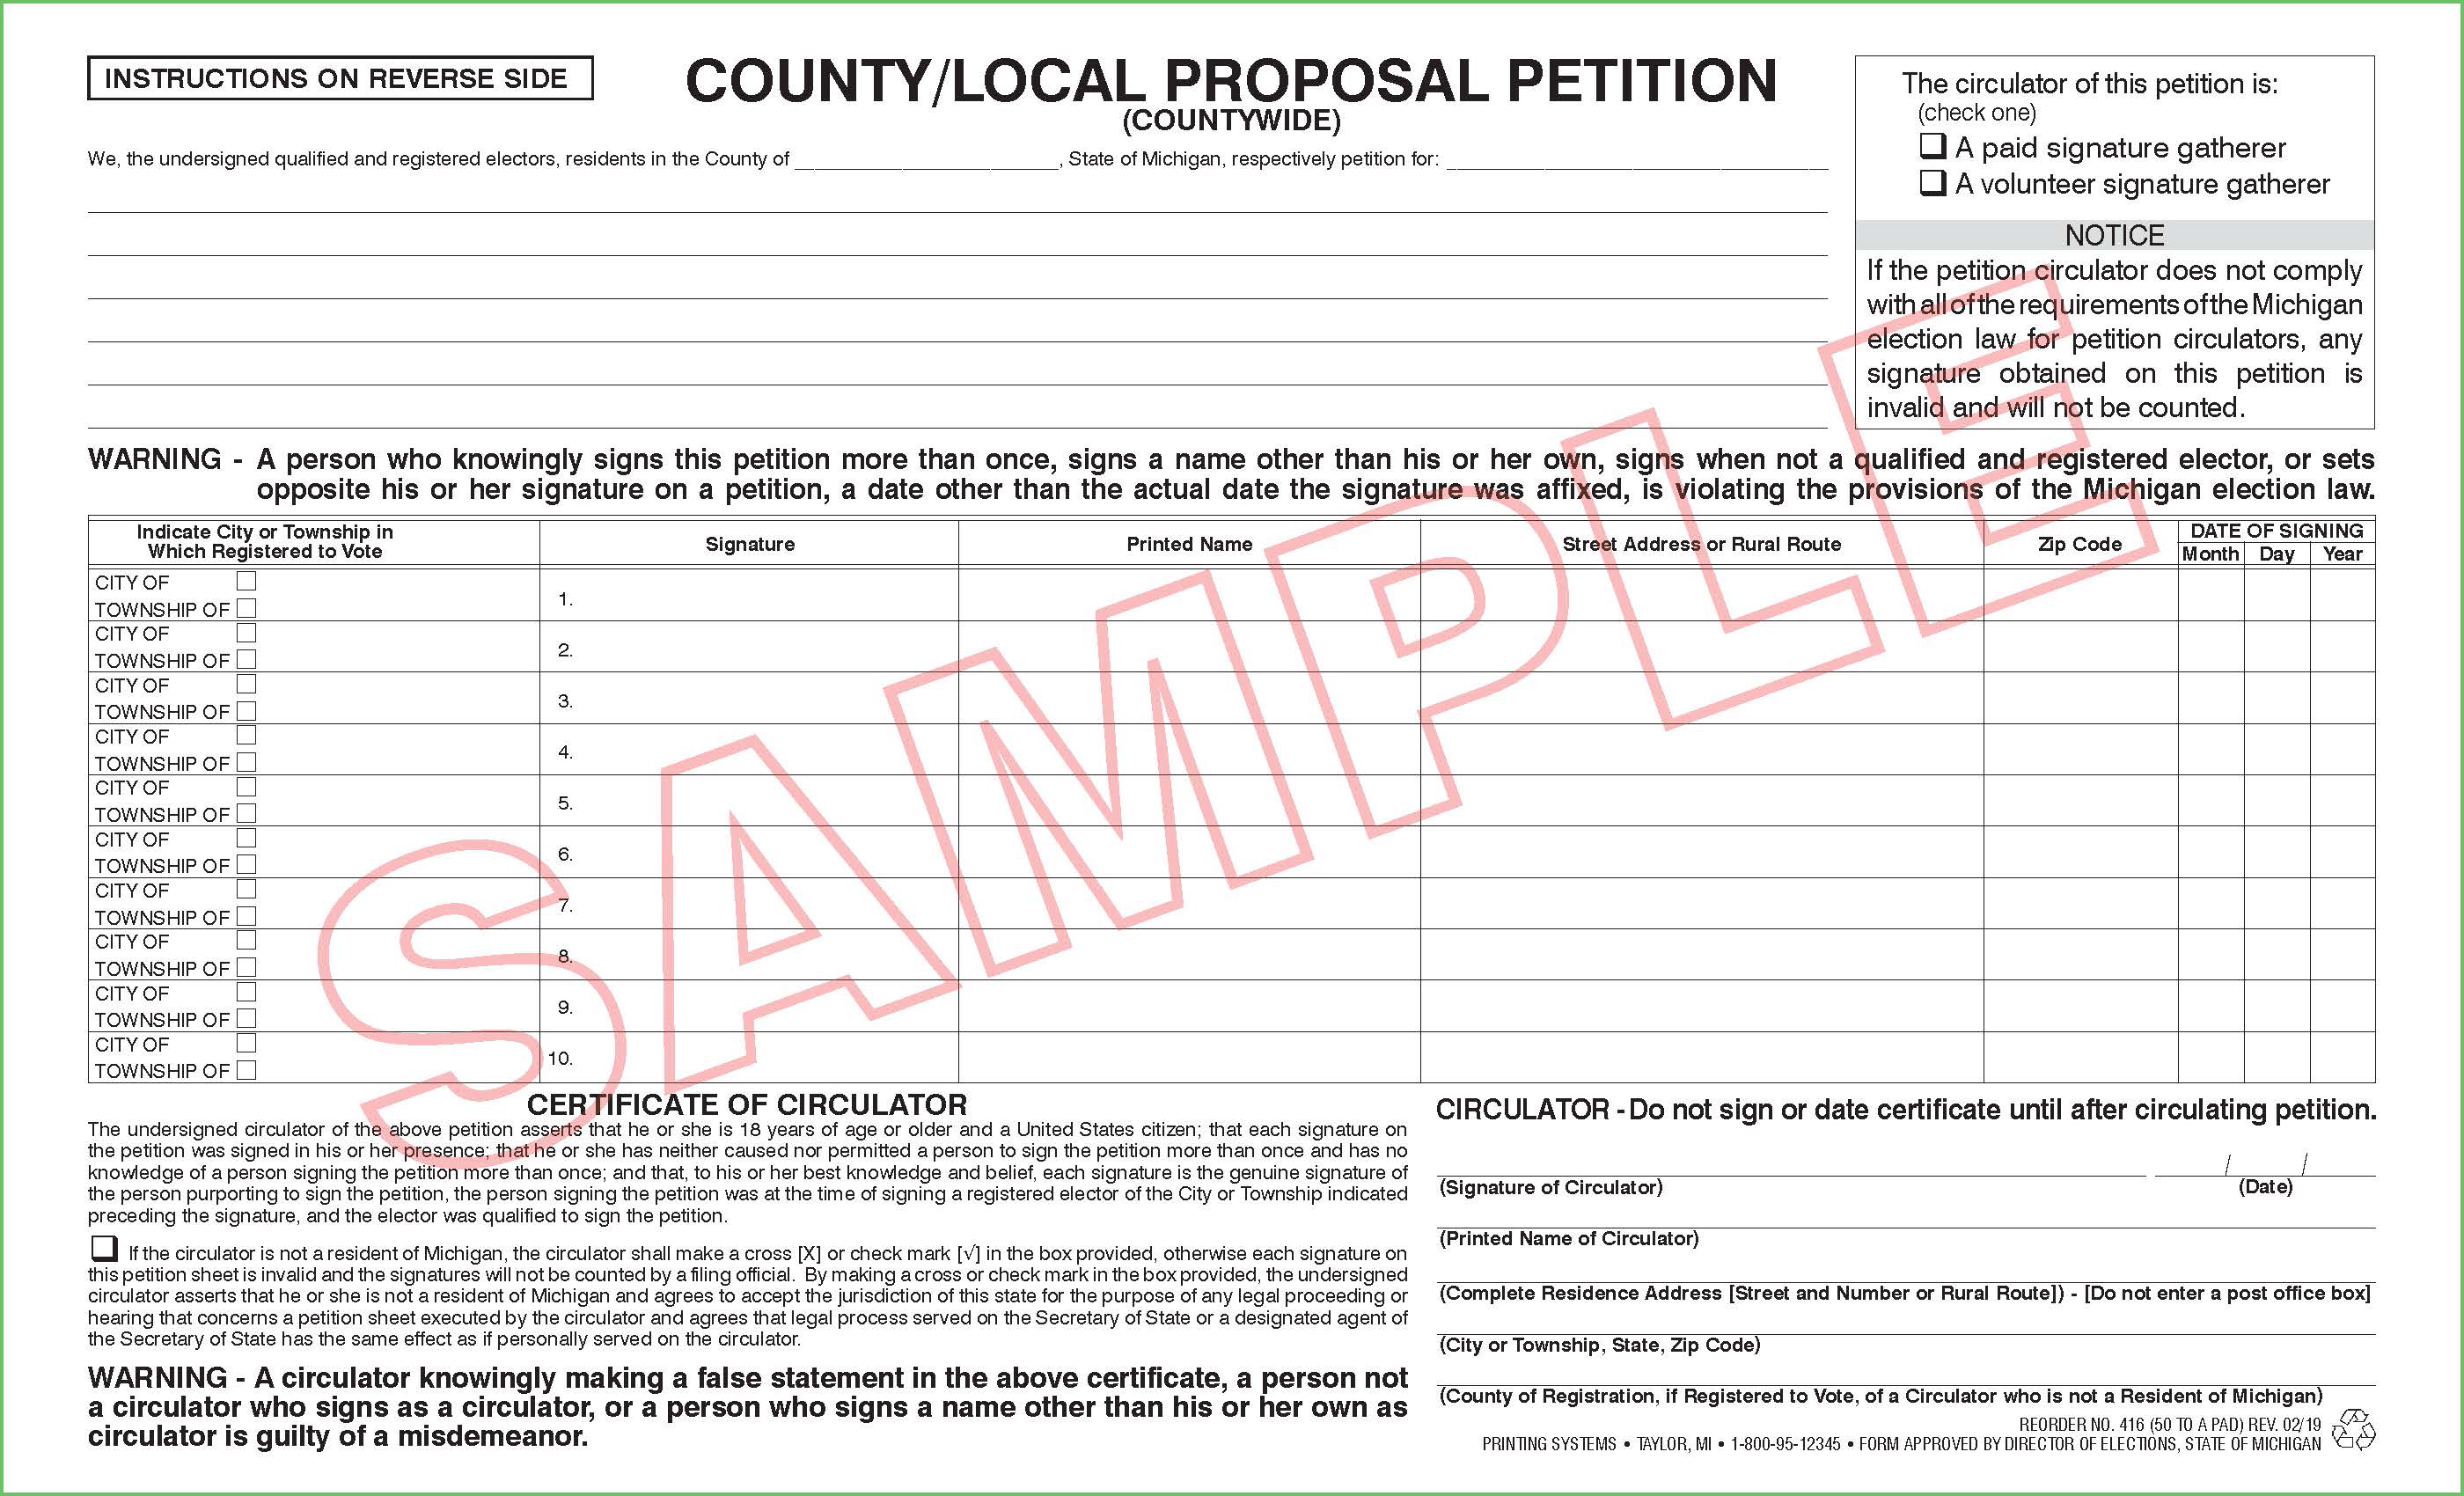 416 County/Local Proposal Petition (Countywide) (50 per pad)